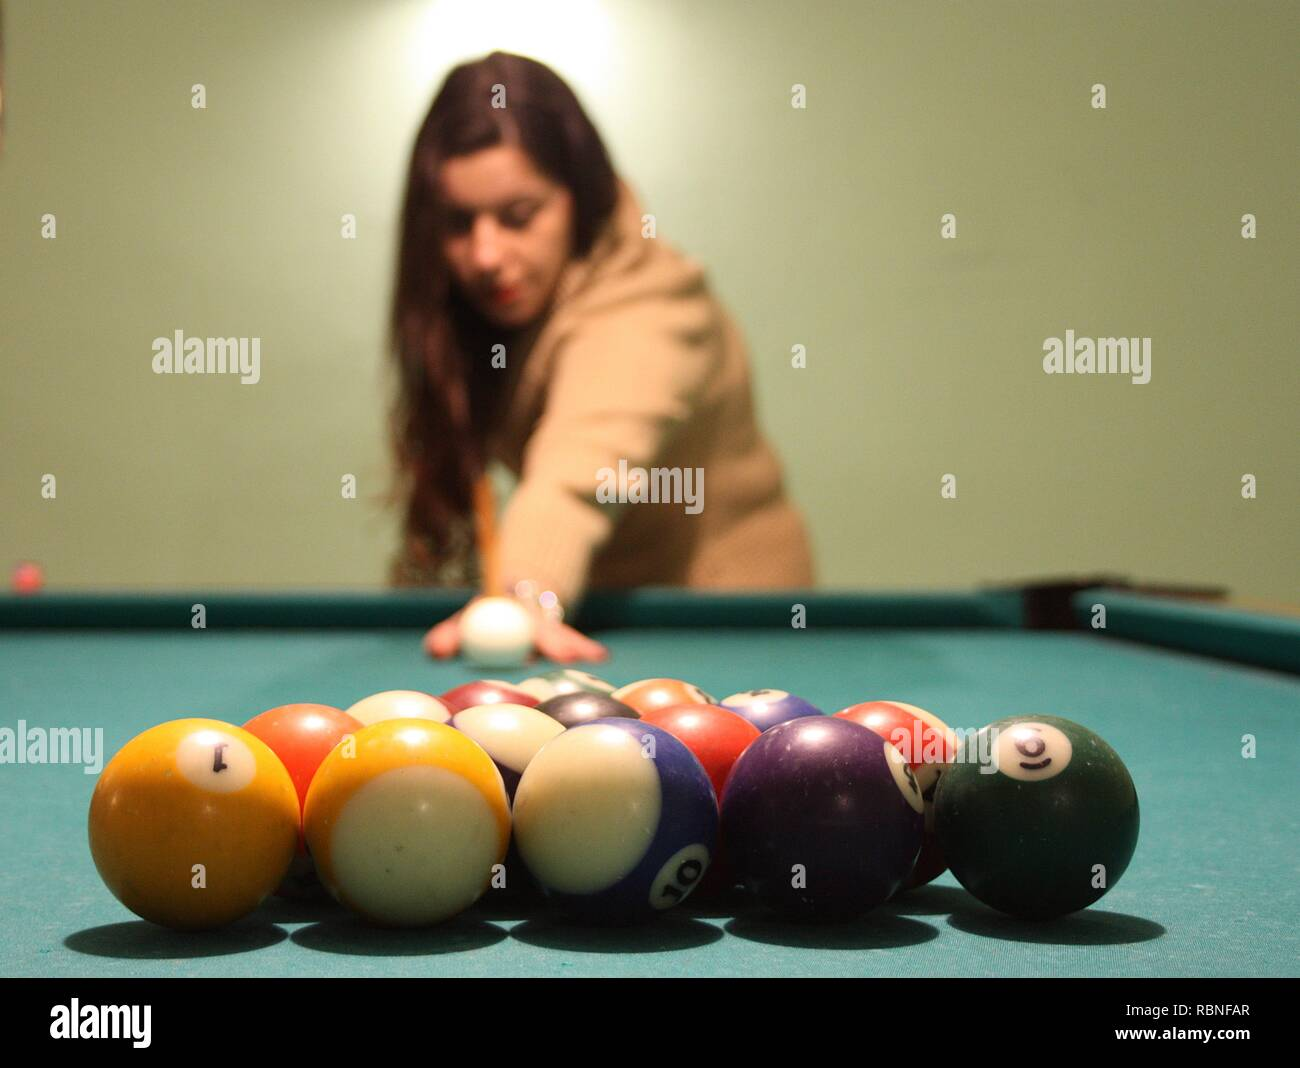 brown-haired caucasian girl plays billiards. the person is attentive to the game, the cue, the balls and the holes Stock Photo